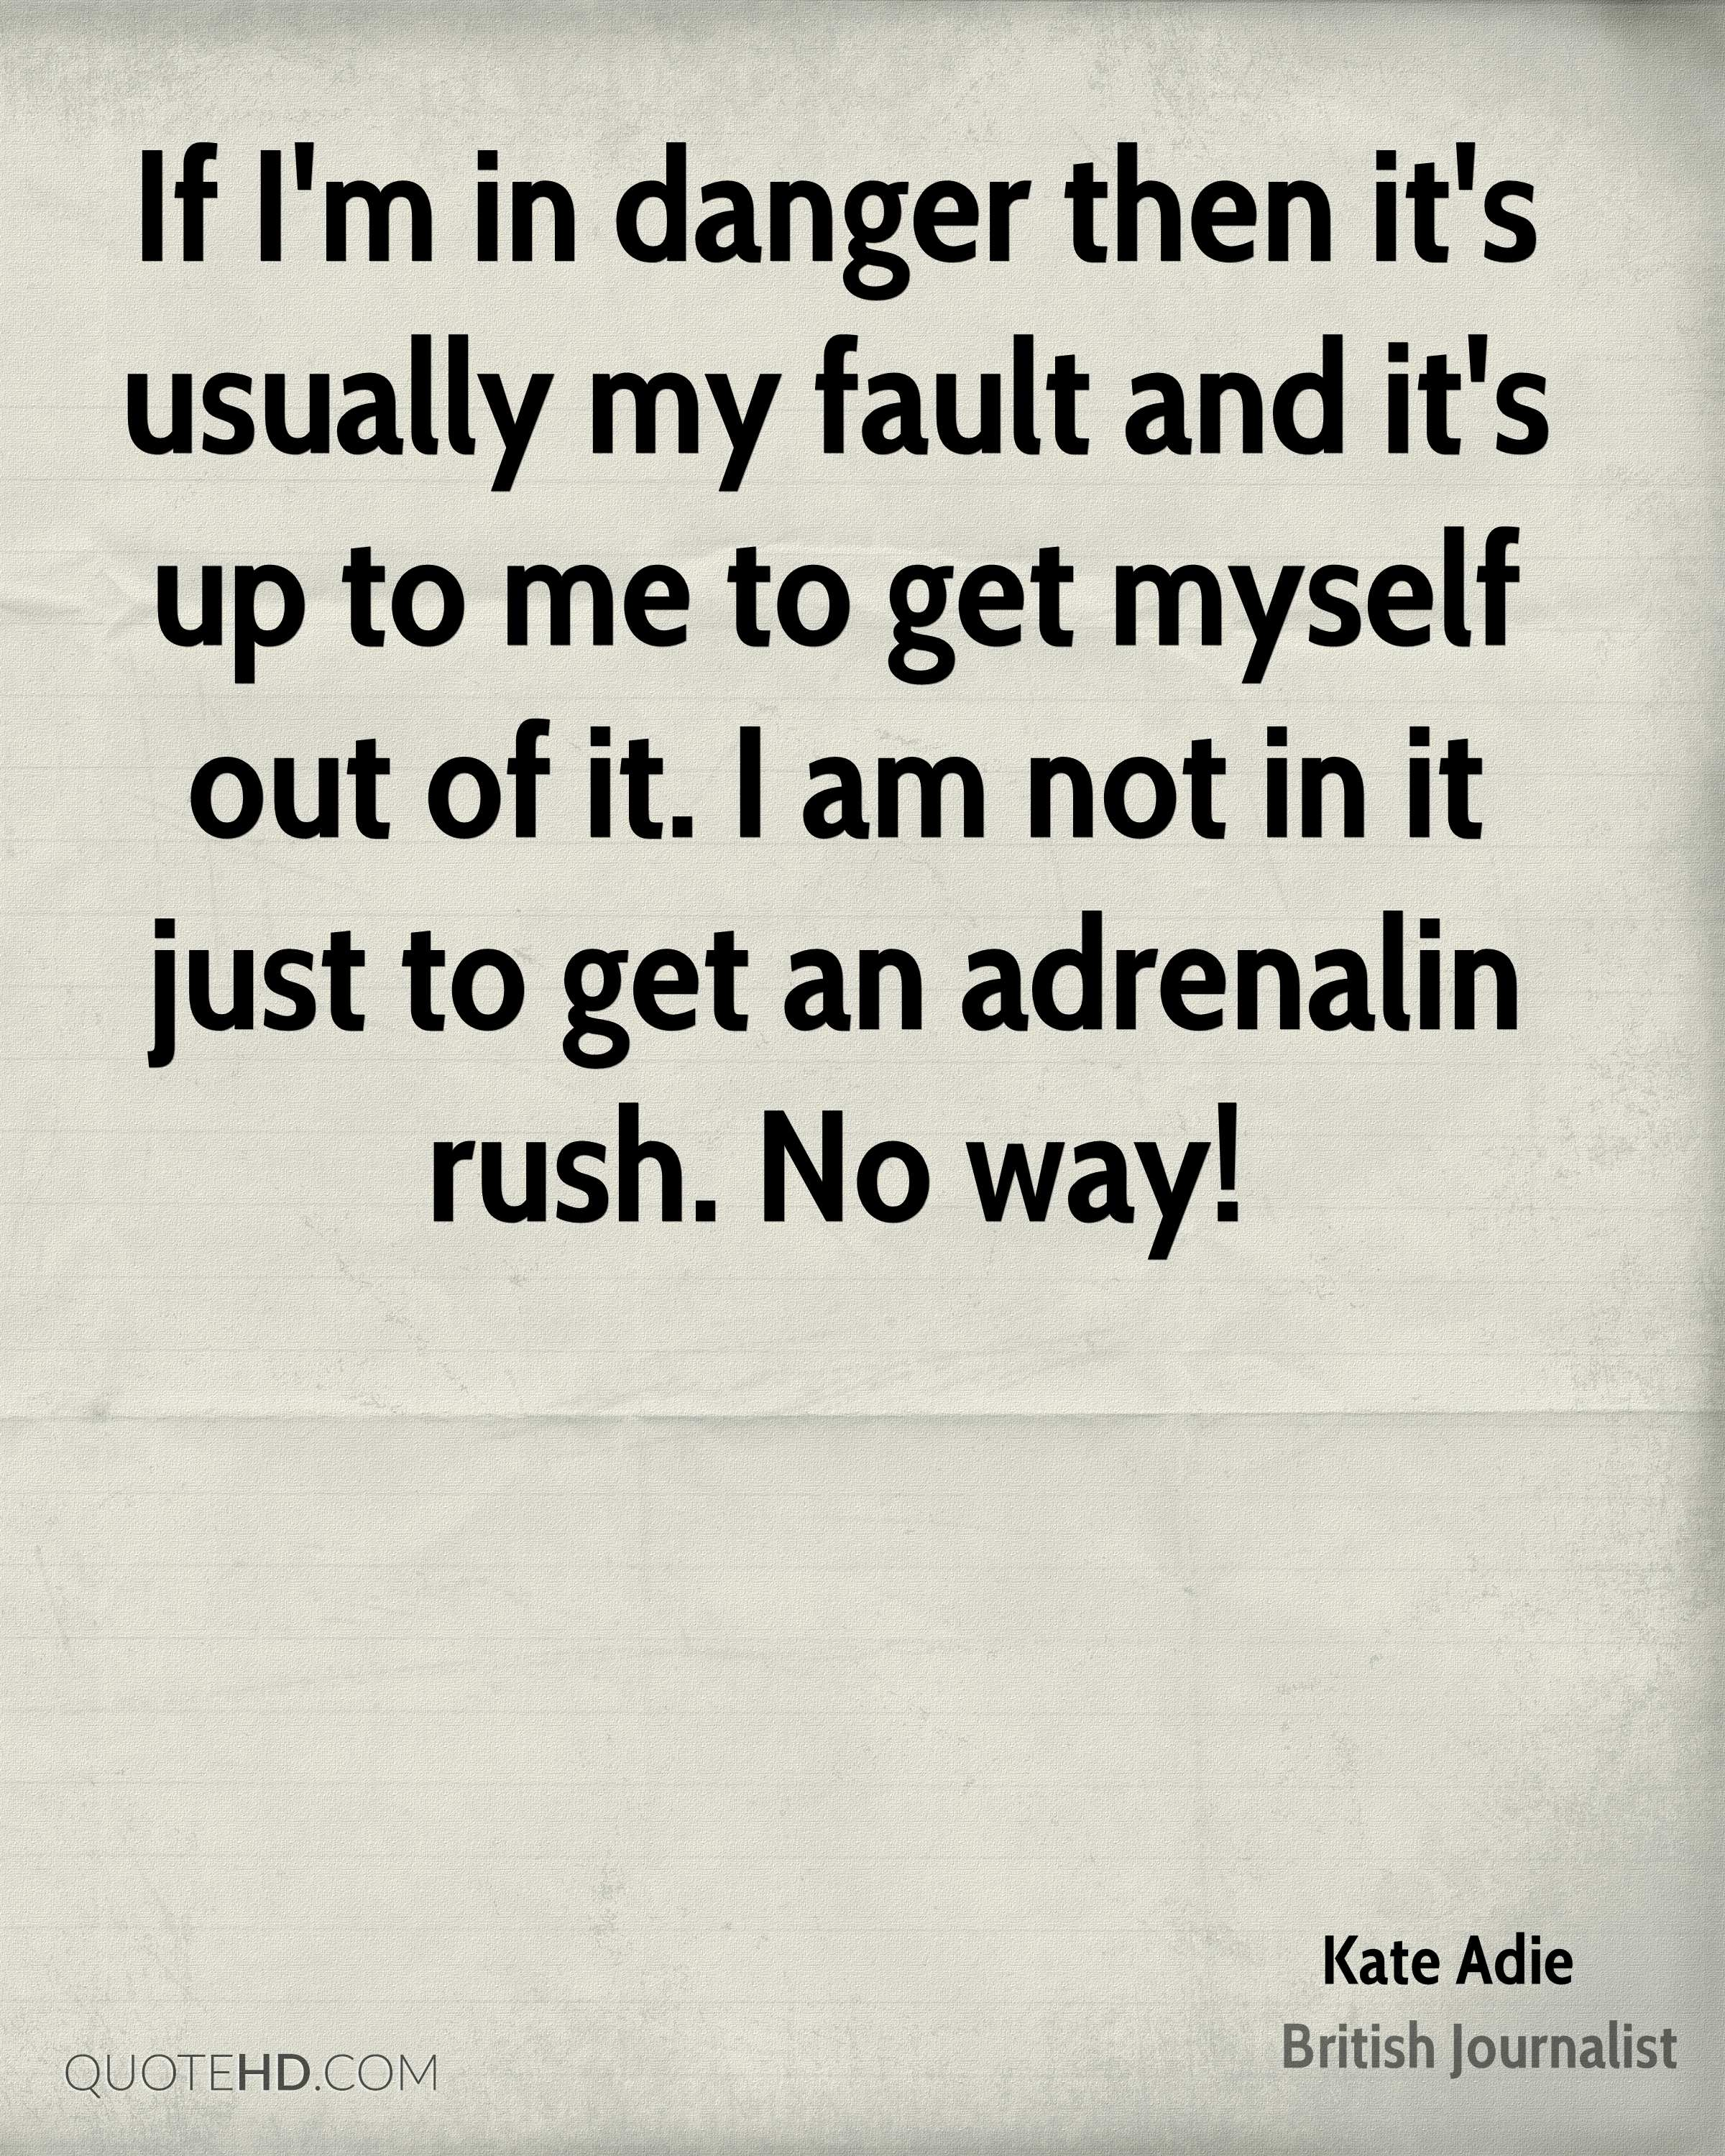 If I'm in danger then it's usually my fault and it's up to me to get myself out of it. I am not in it just to get an adrenalin rush. No way!